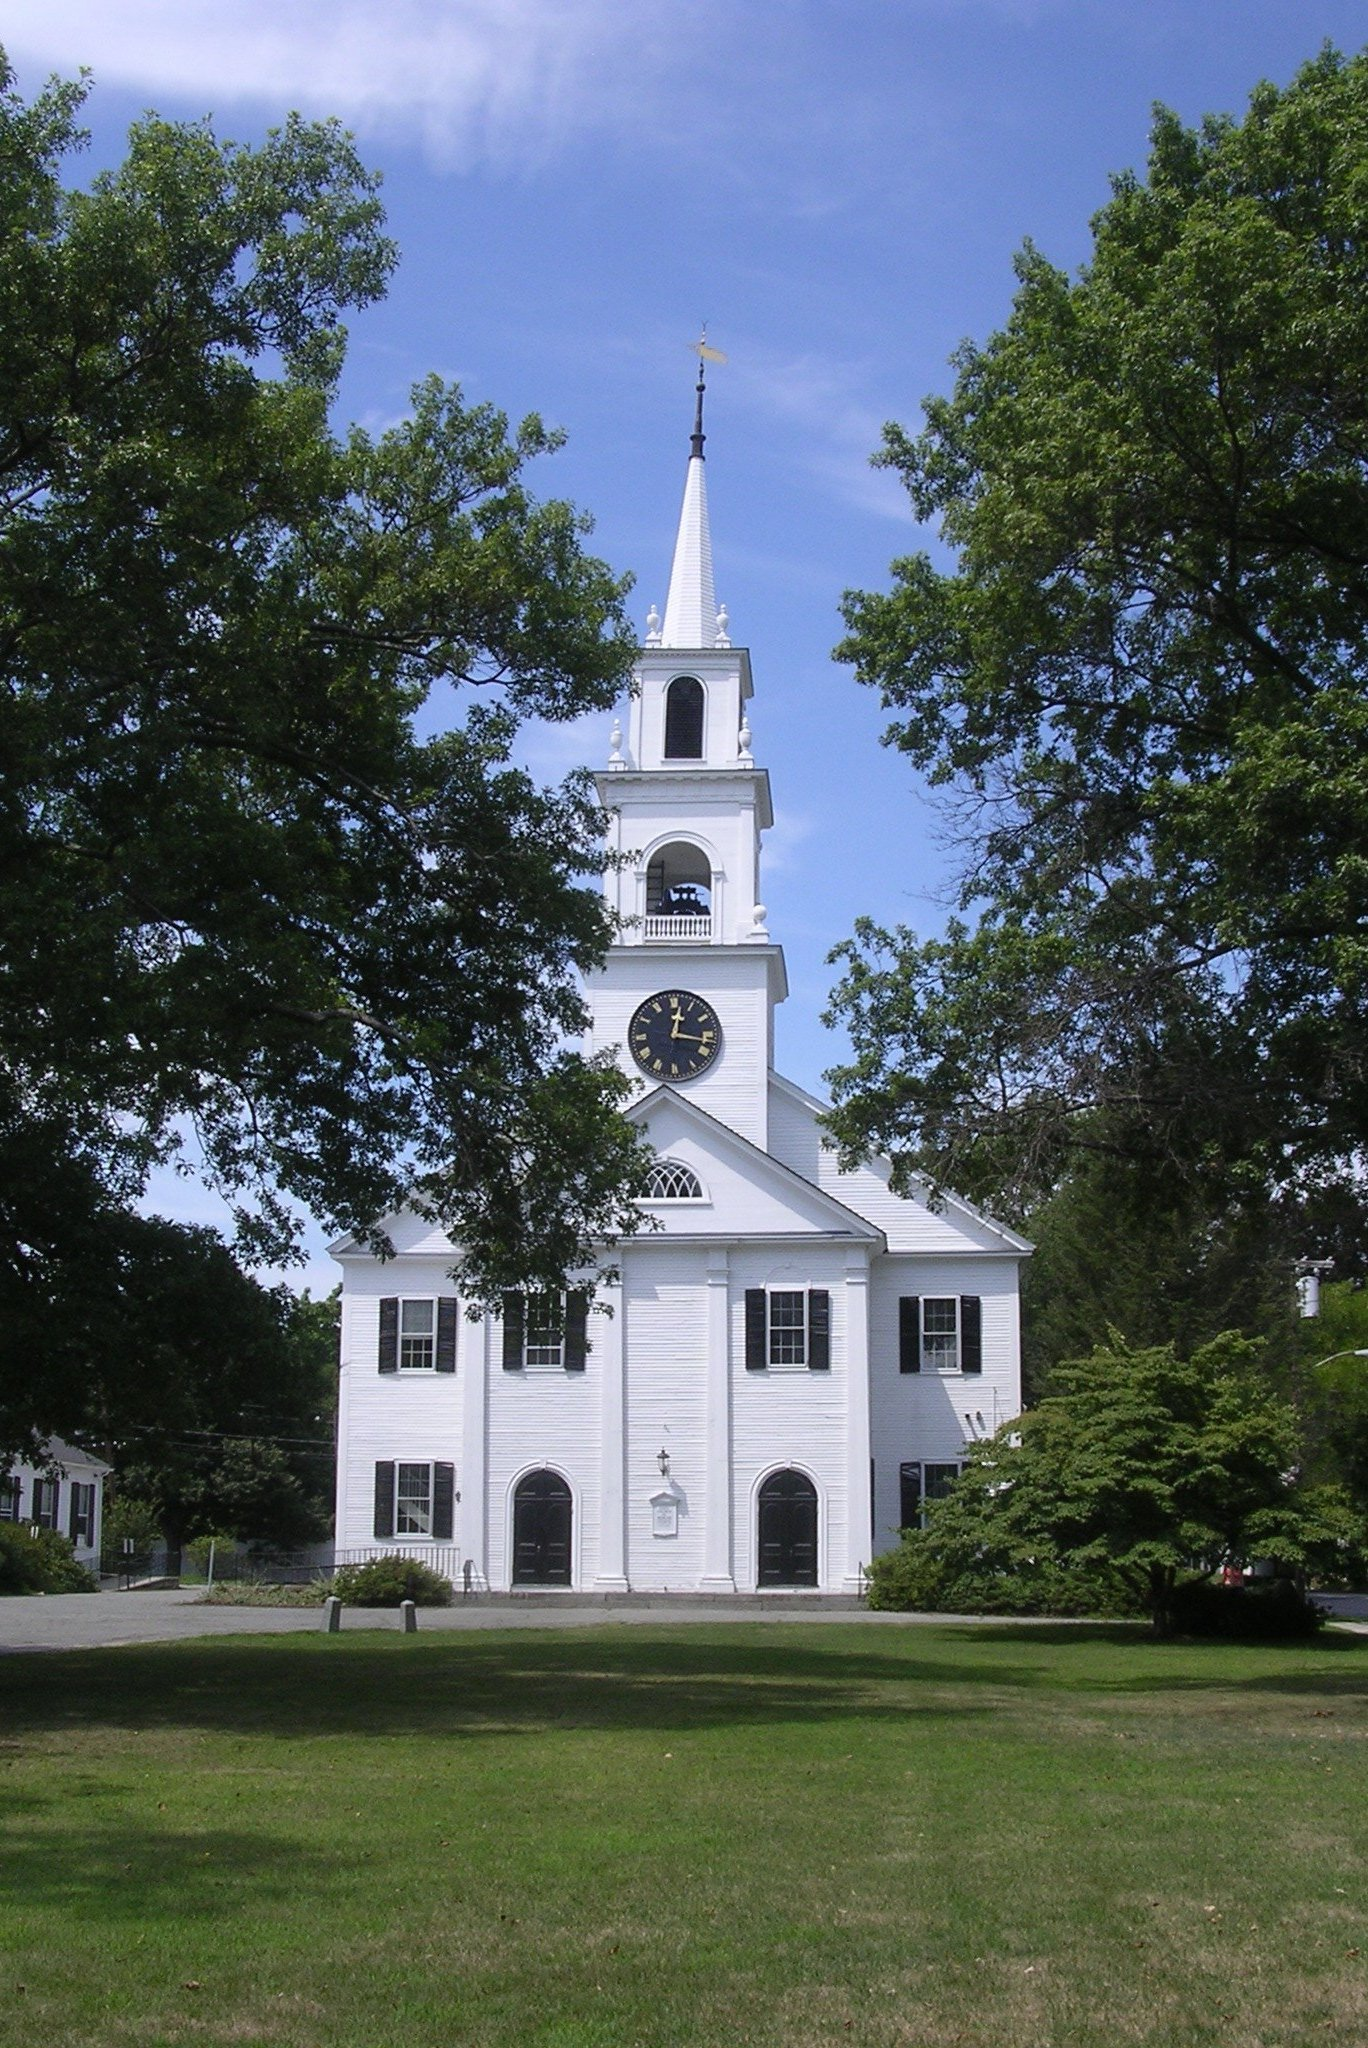 First Church and Parish, Dedham, MA (Unitarian Universalist)